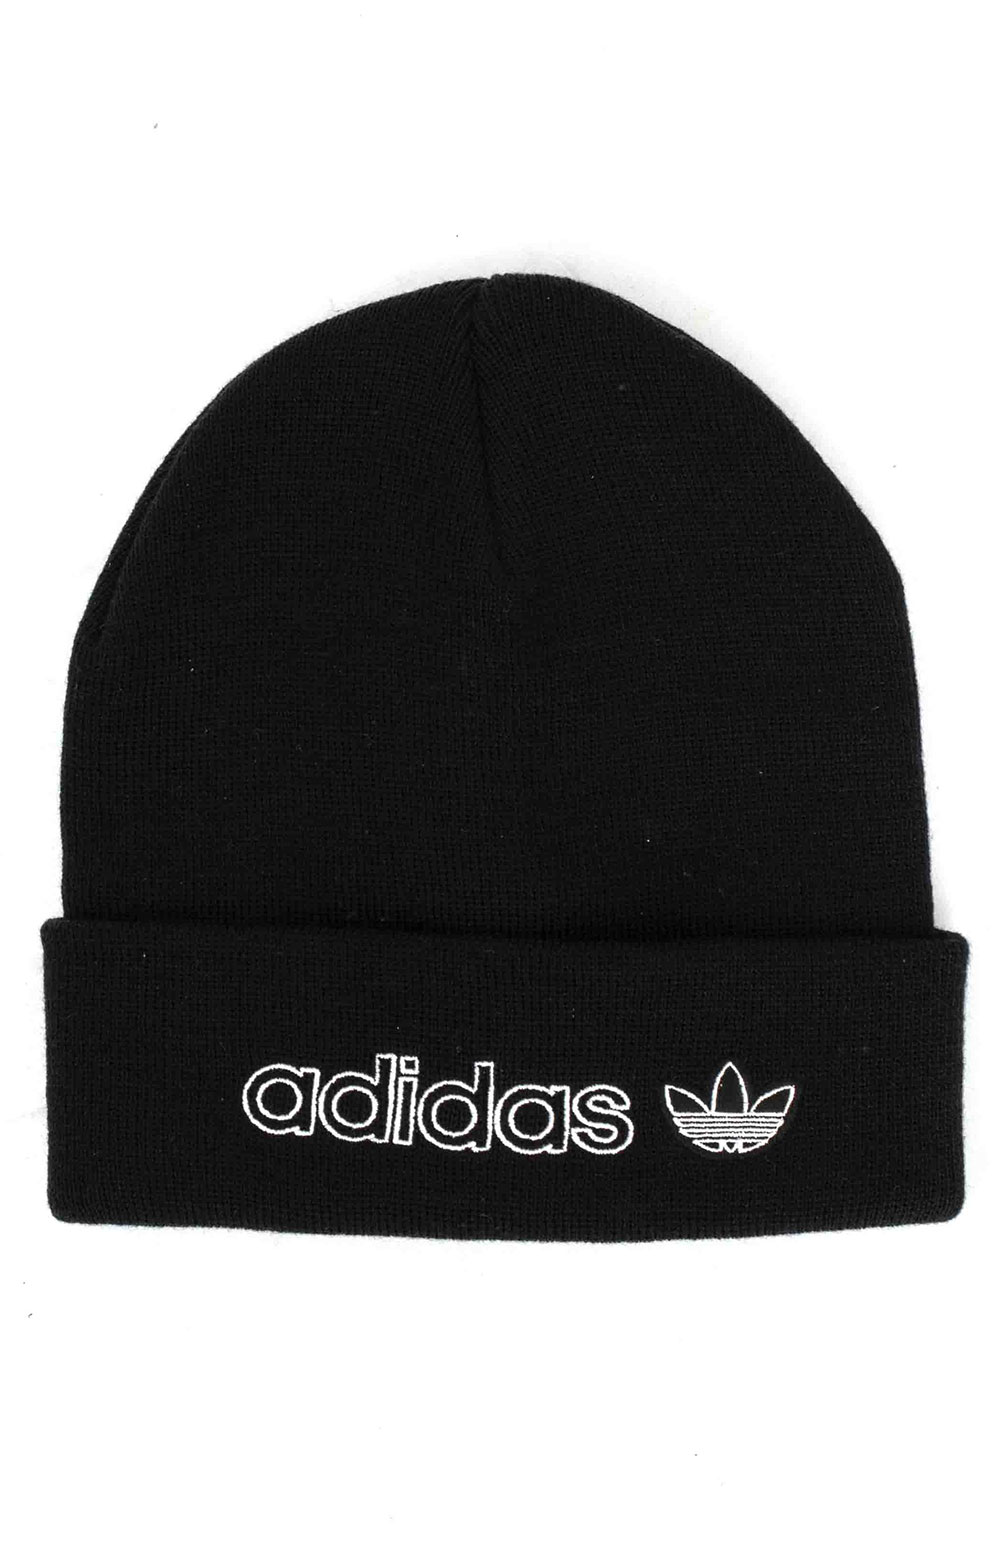 Originals Forum Outline Beanie - Black